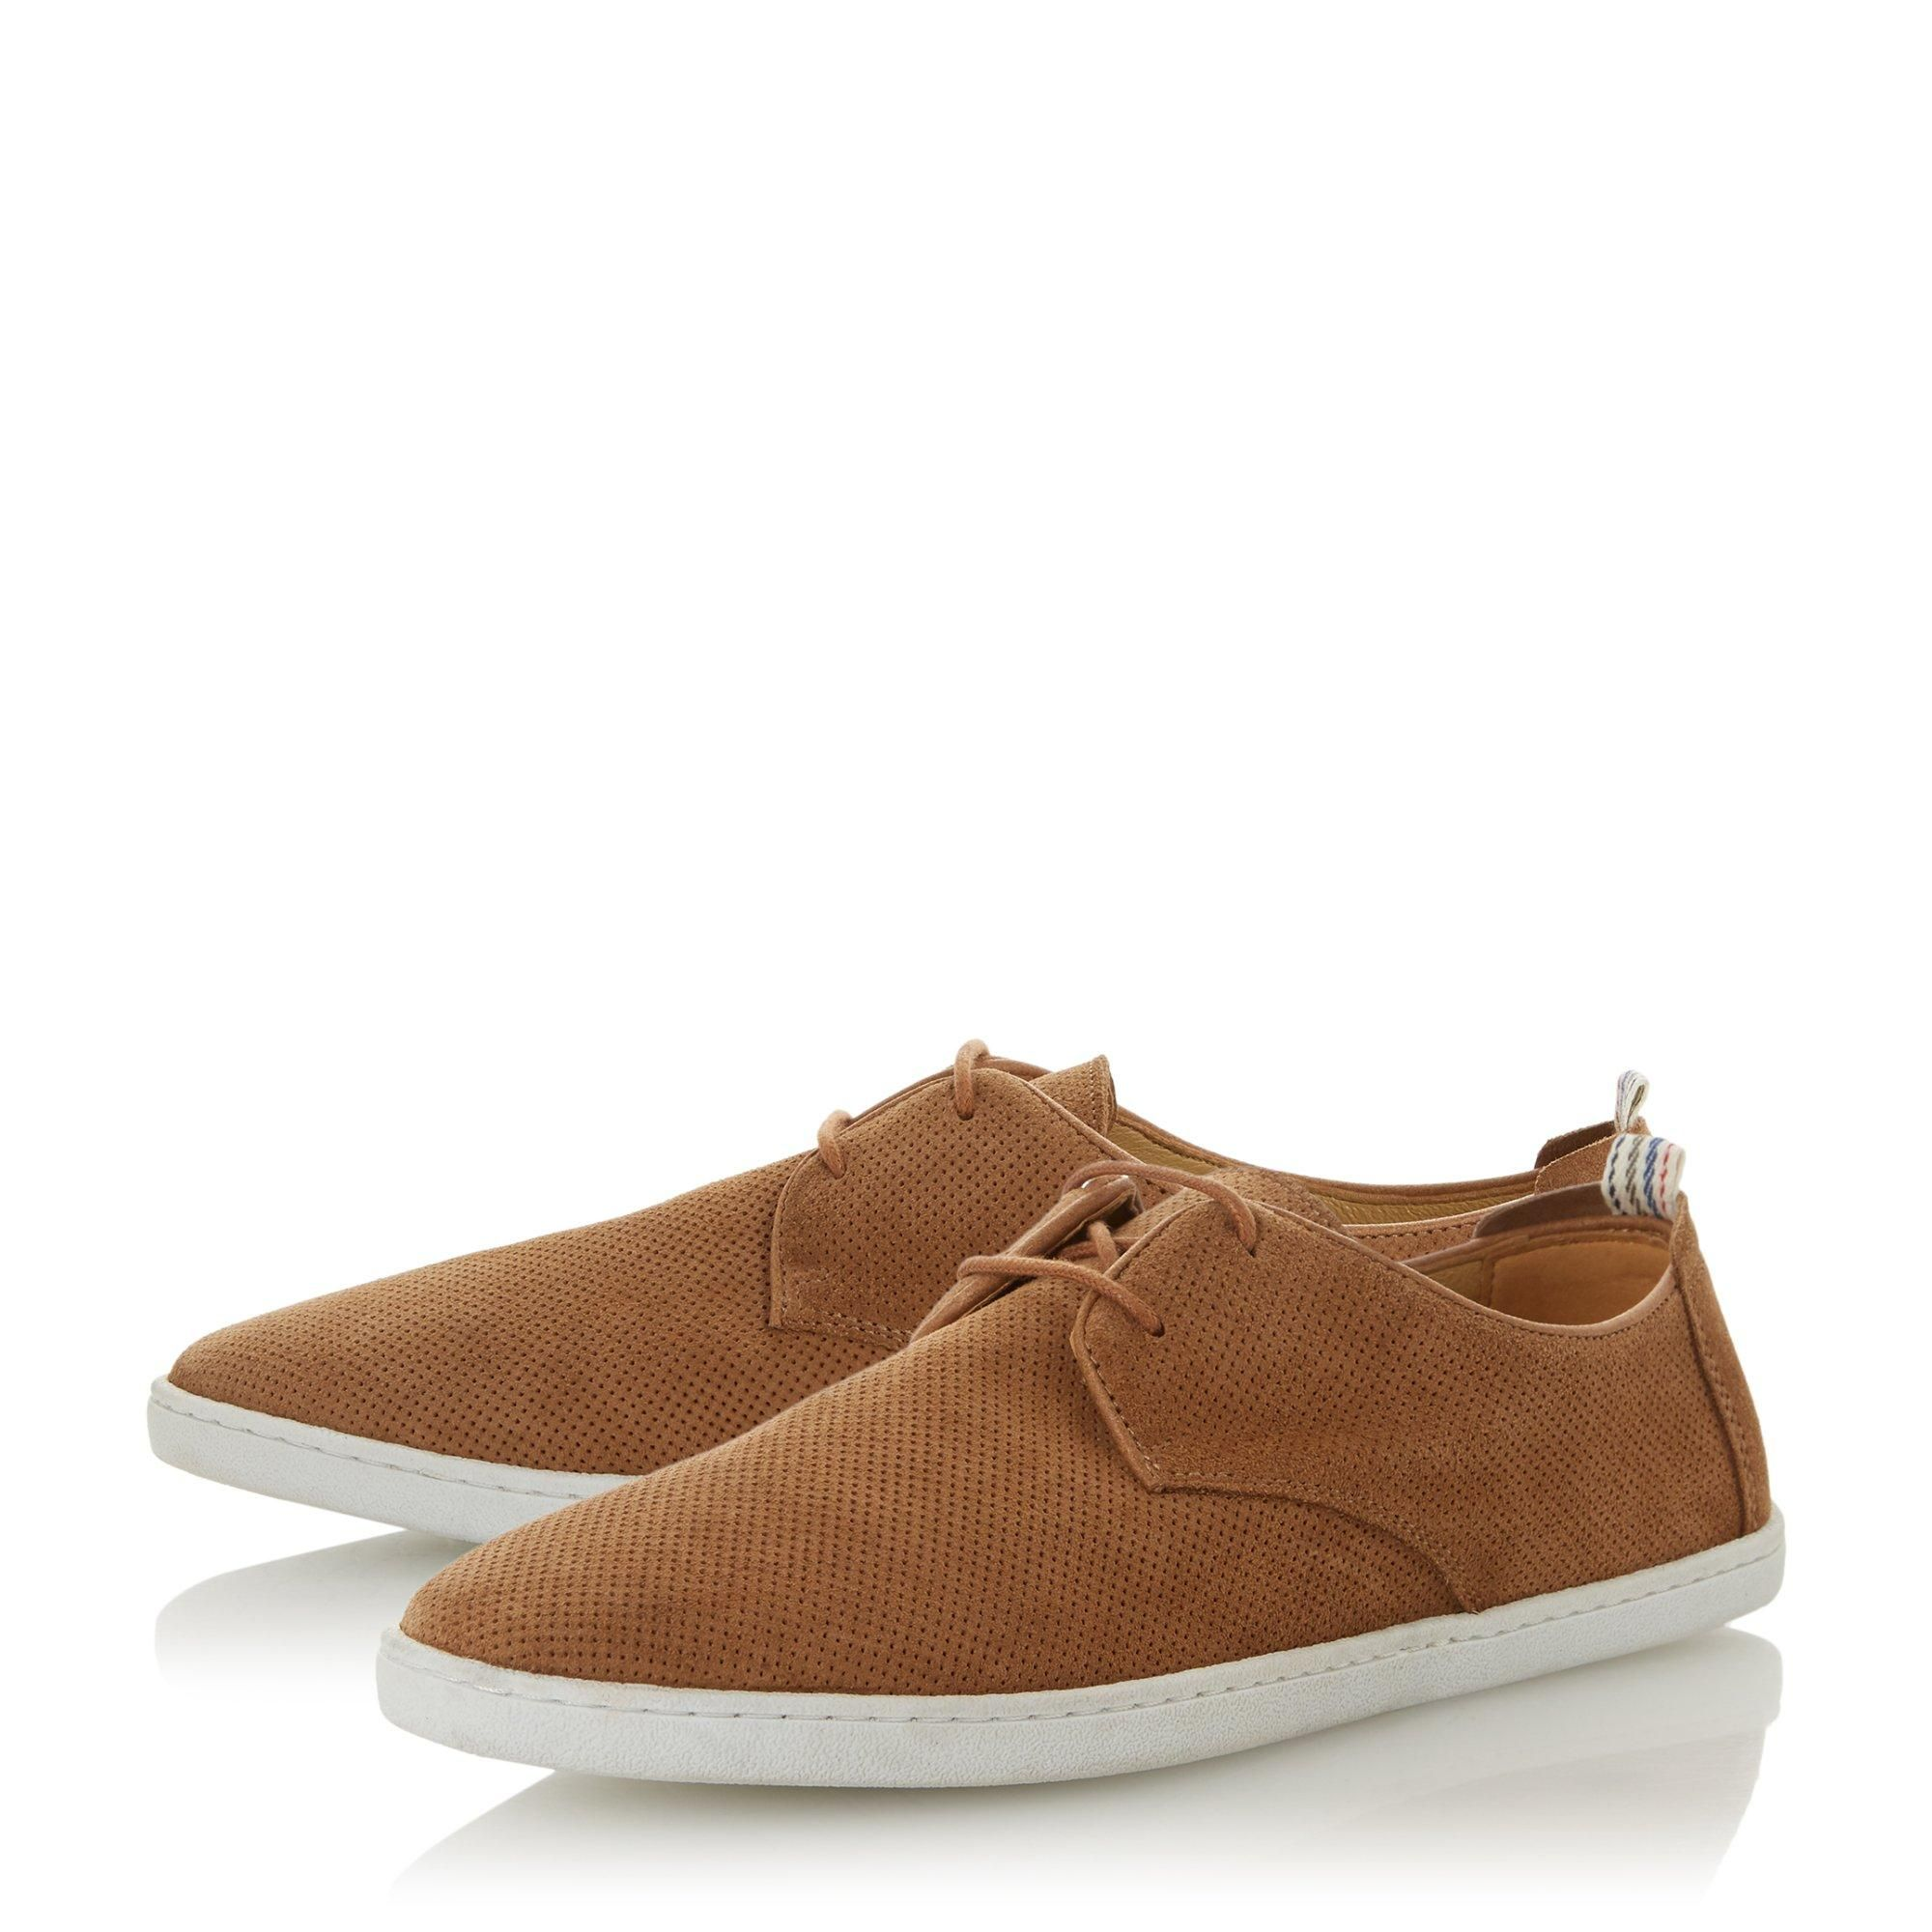 Dune Mens BELLOWS Perforated Casual Gibson Shoes